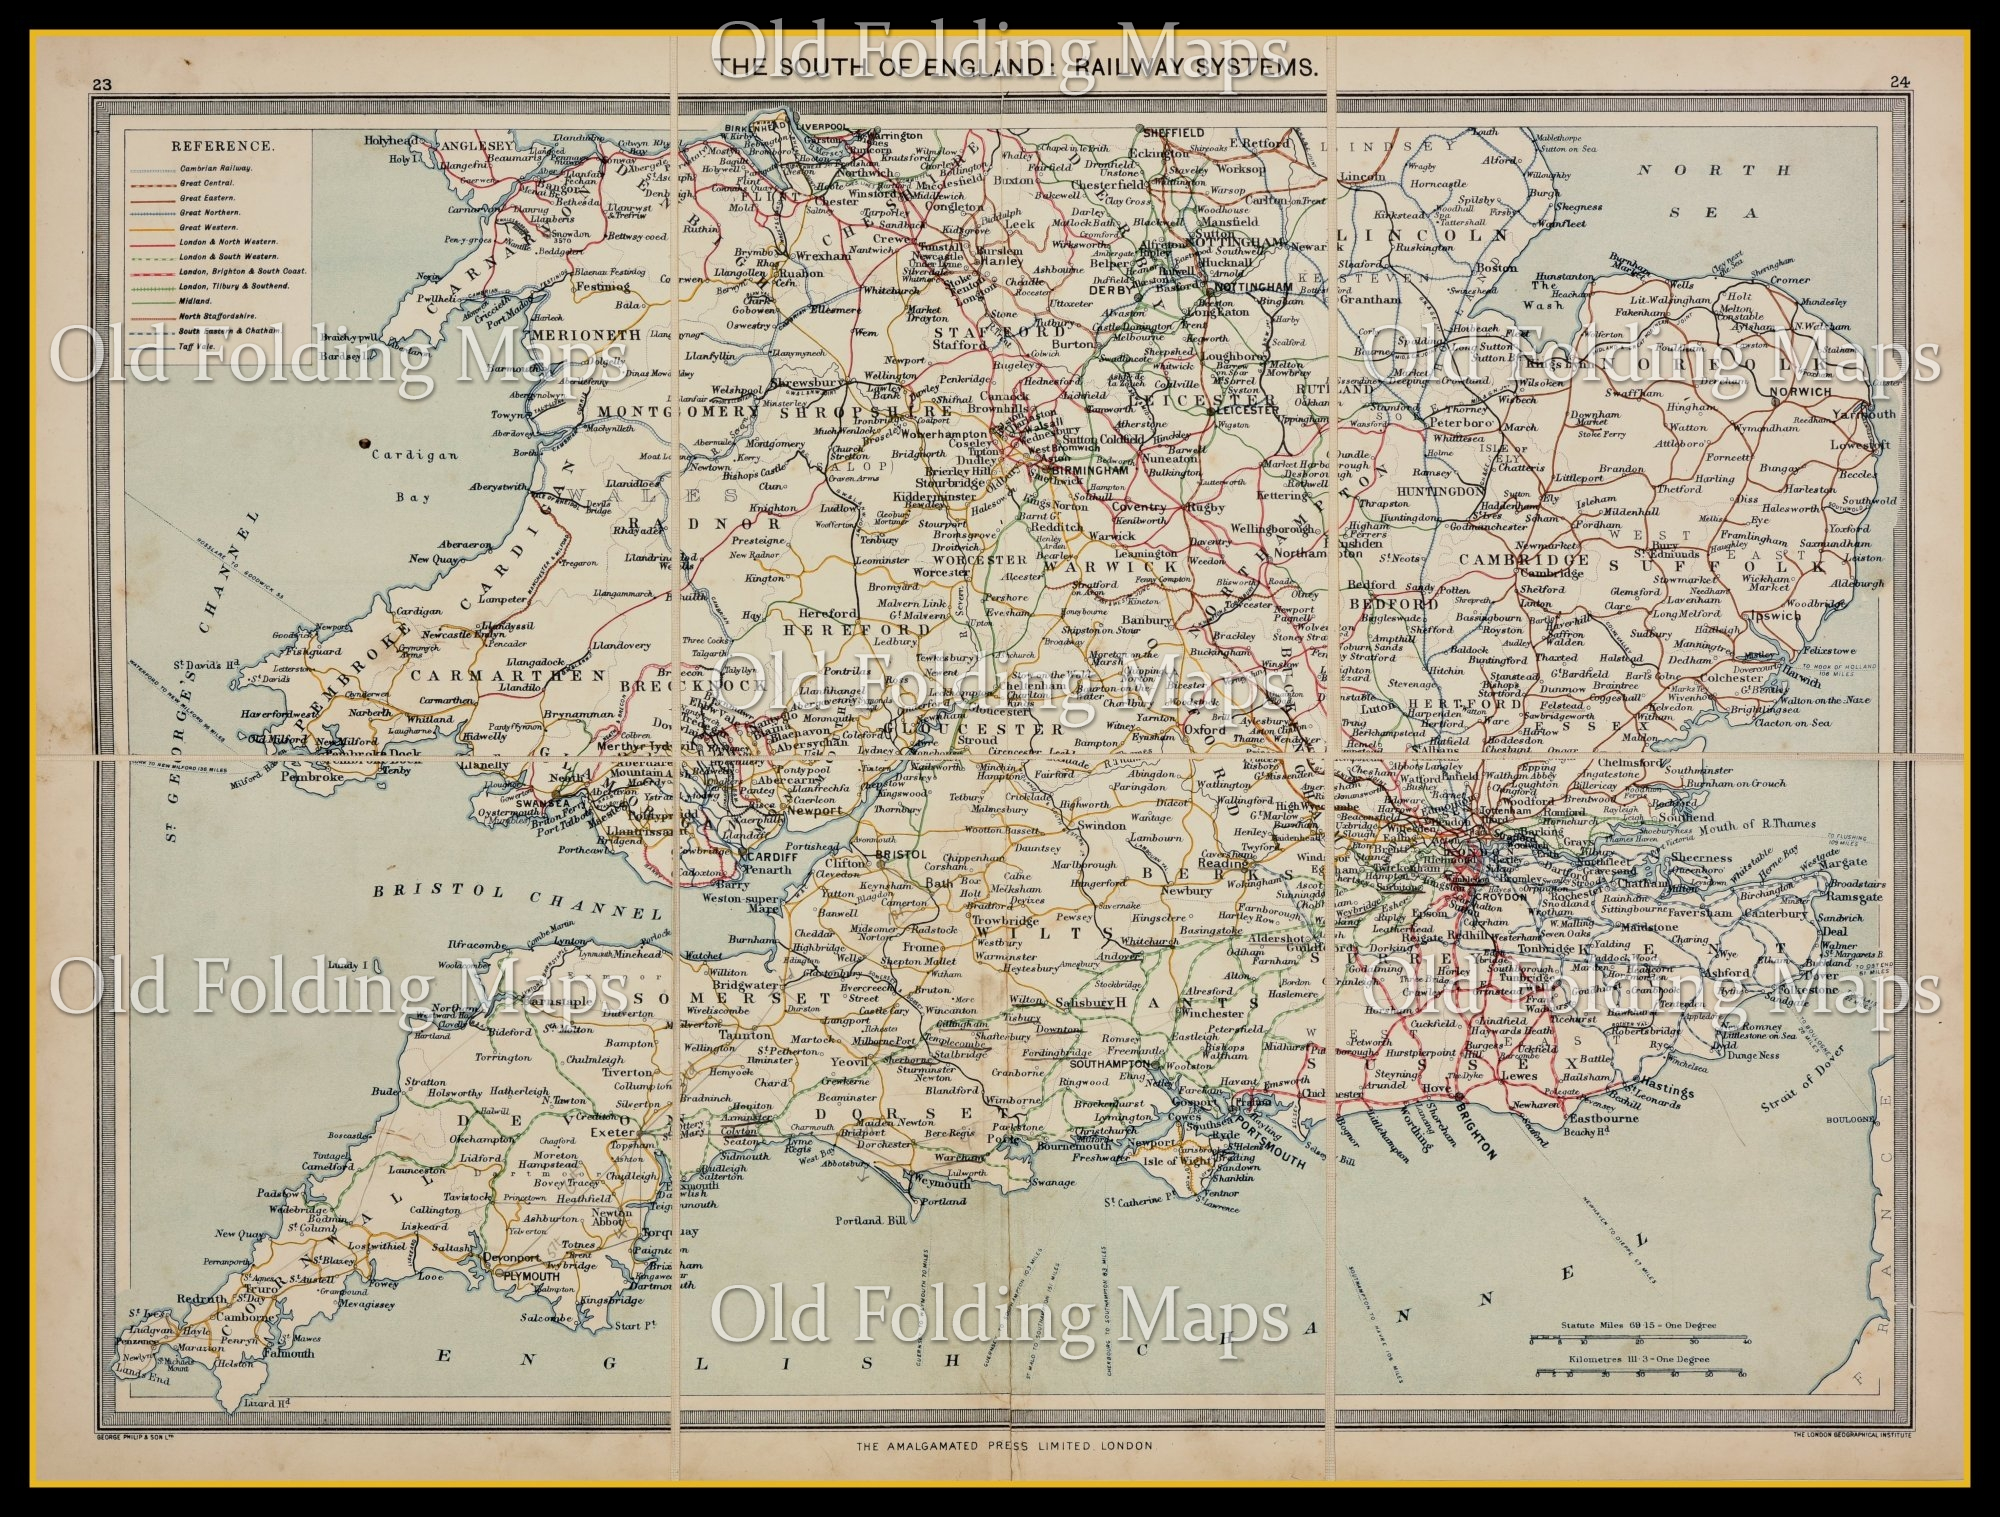 Map Of England Rail.Old Map Of South Of England Railway Systems Circa 1900